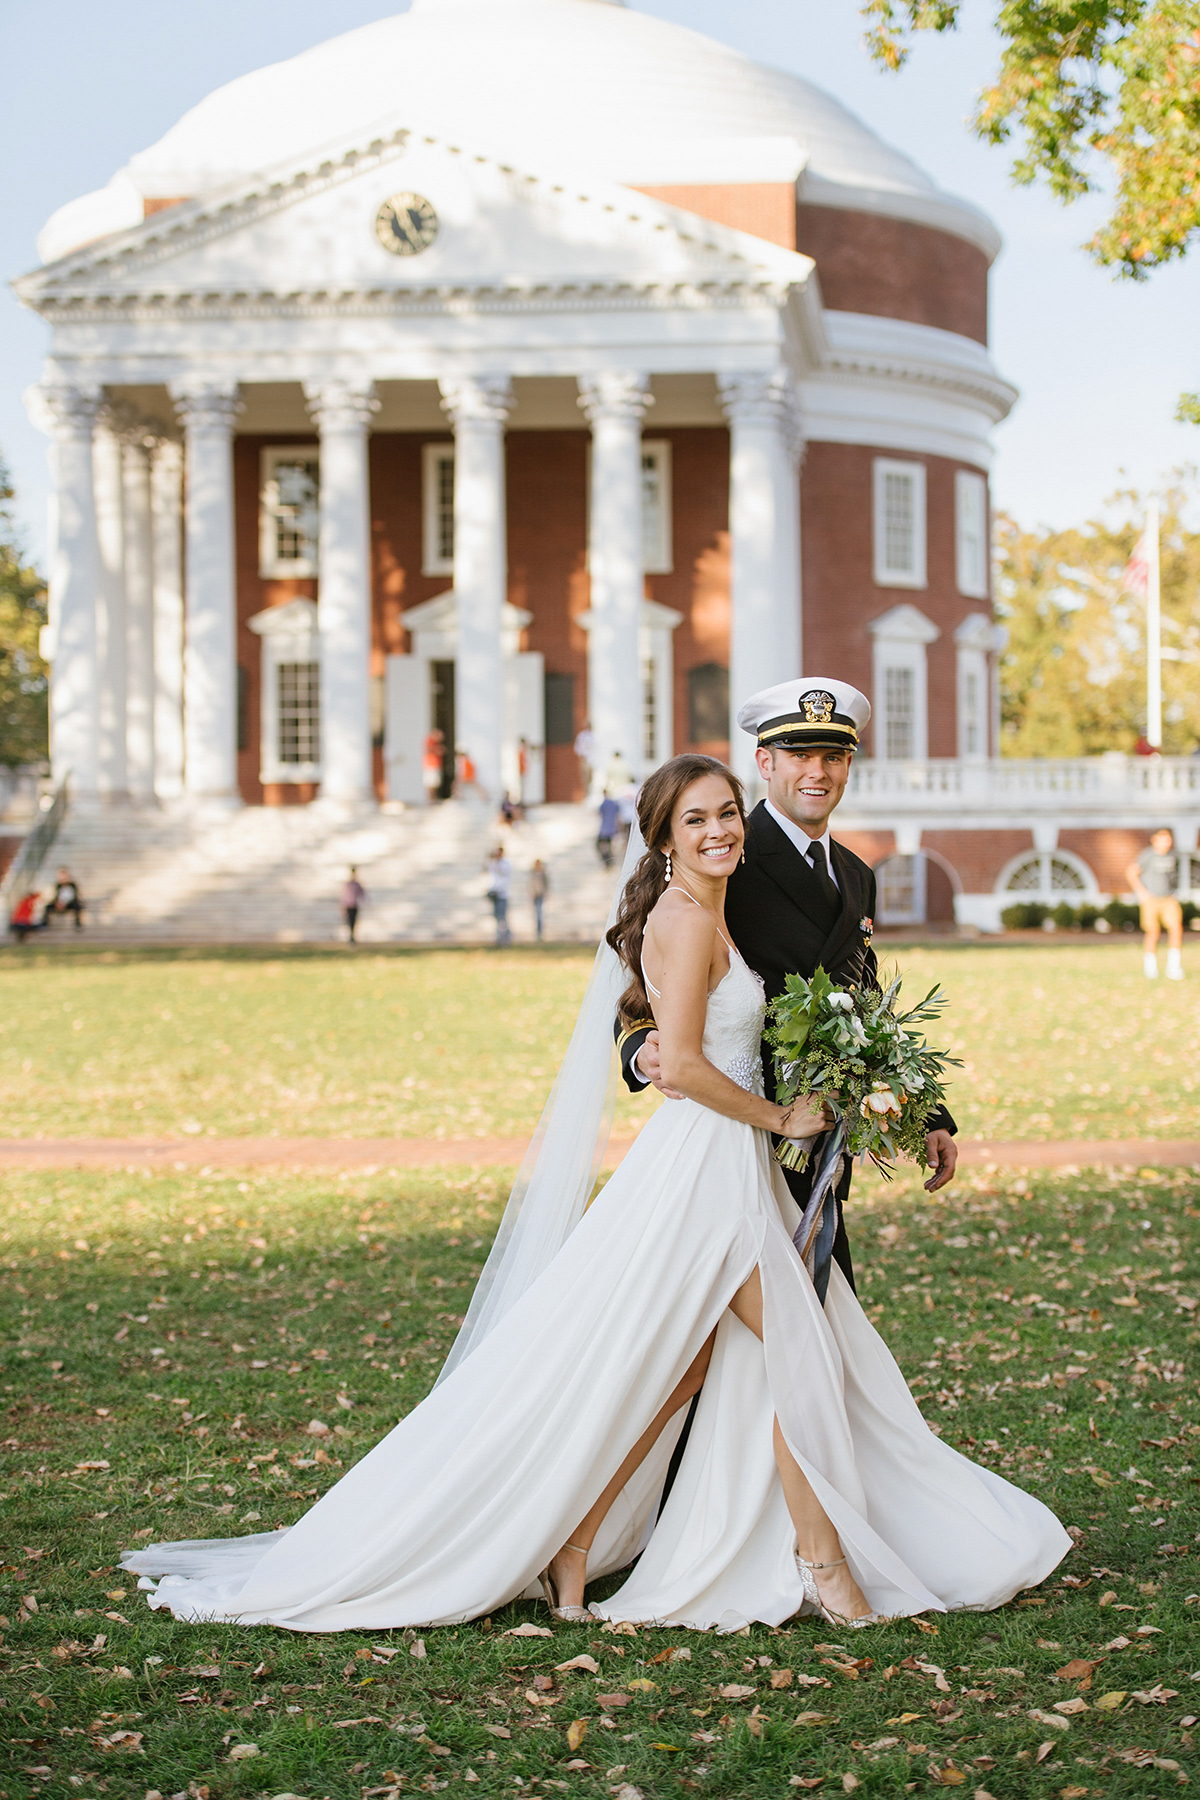 anne and staton wedding portrait outside venue